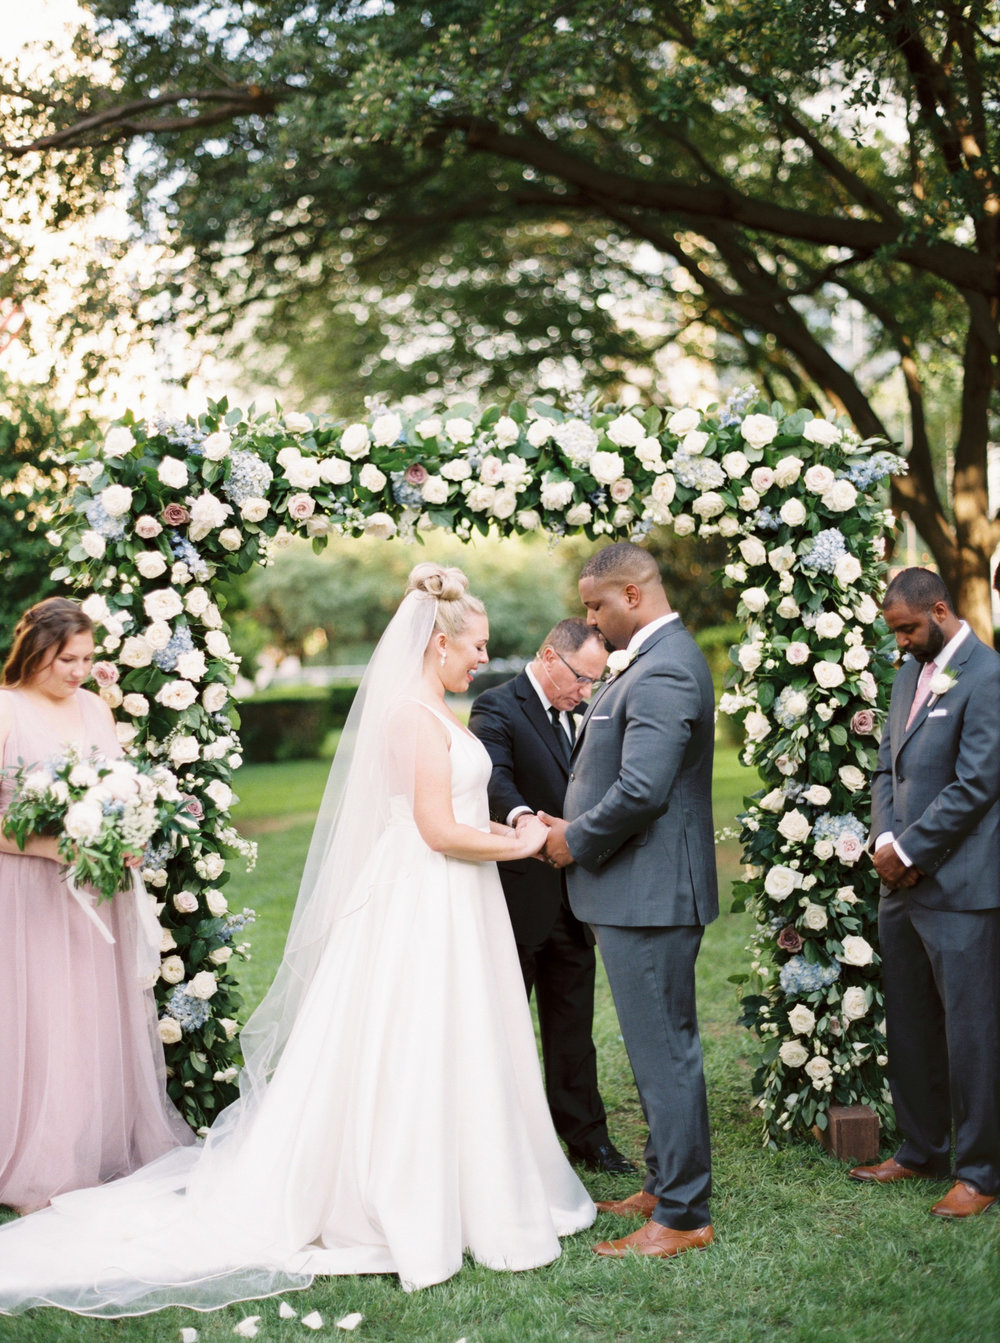 Summer Floral Garden Party Wedding at Marie Gabrielle, by Dallas destination wedding photographer Tracy Enoch